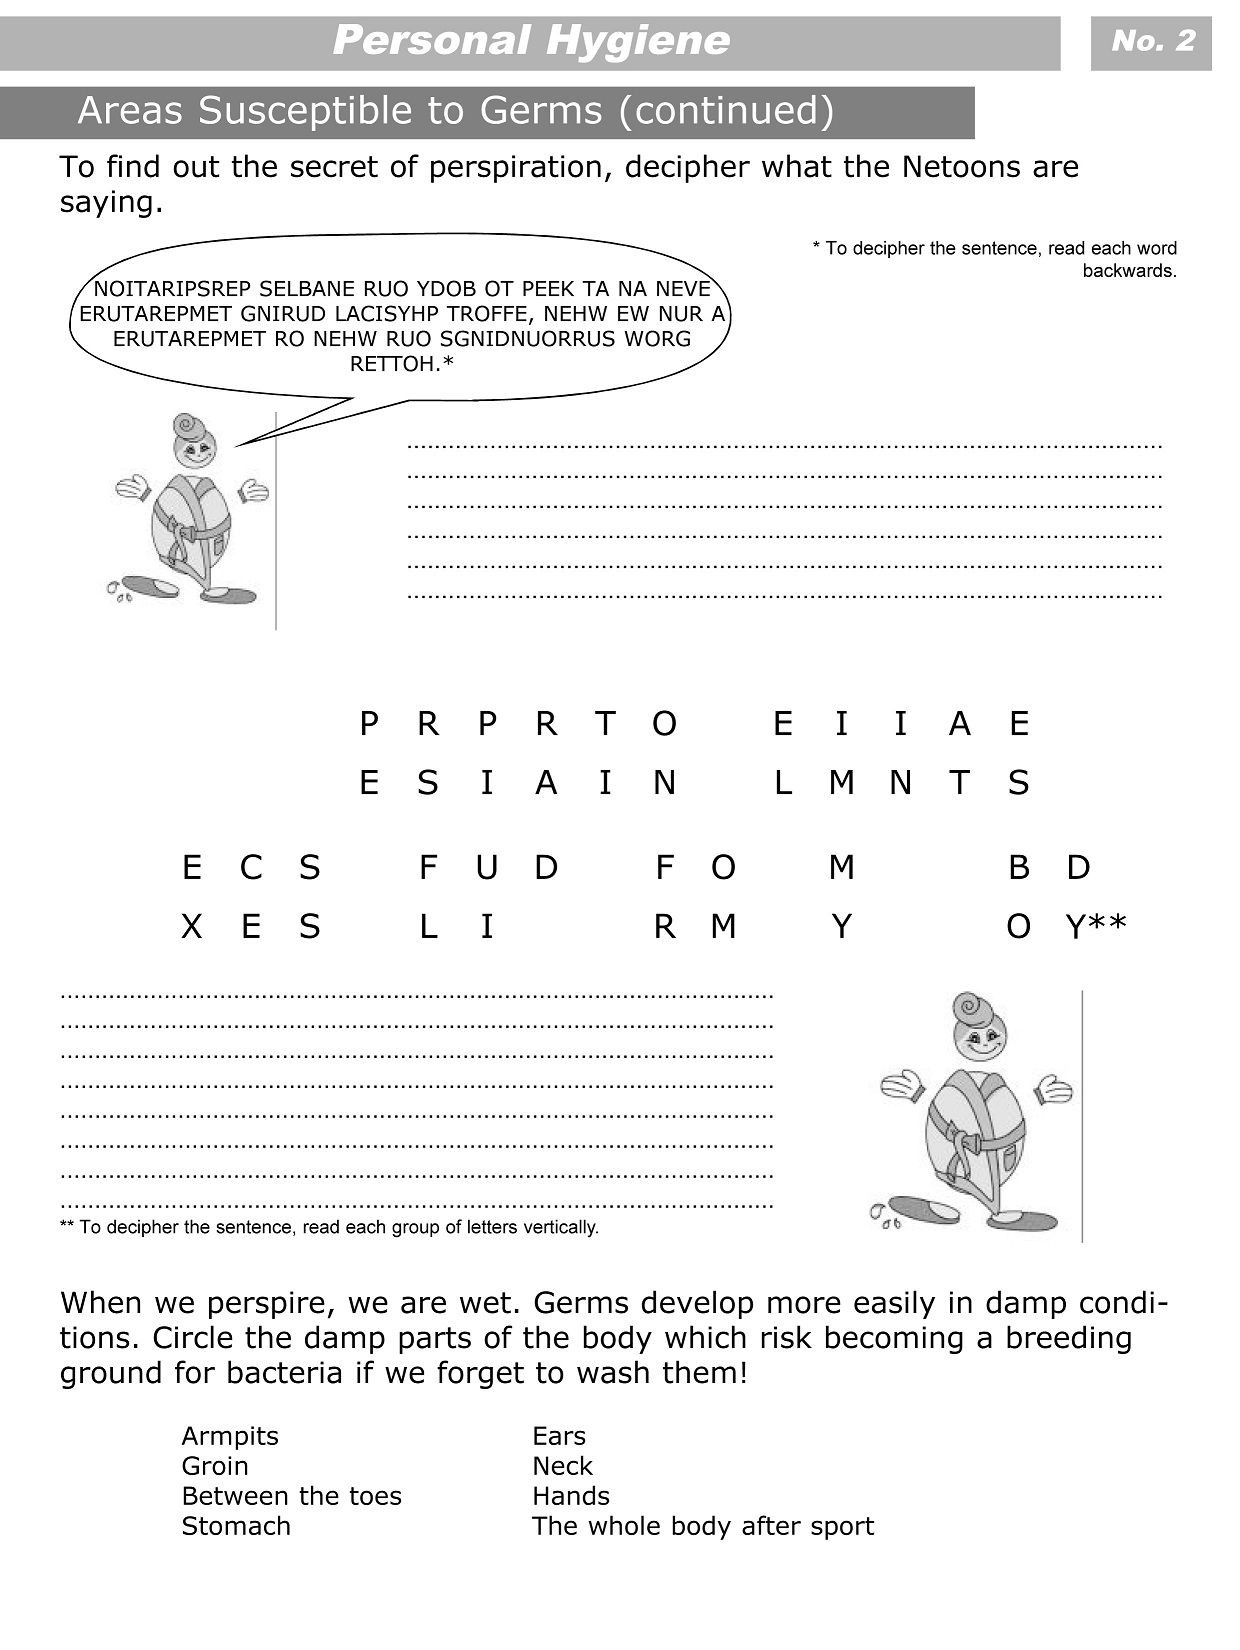 3rd Grade Health Worksheets Personal Hygiene Worksheets for Kids Level 3 2